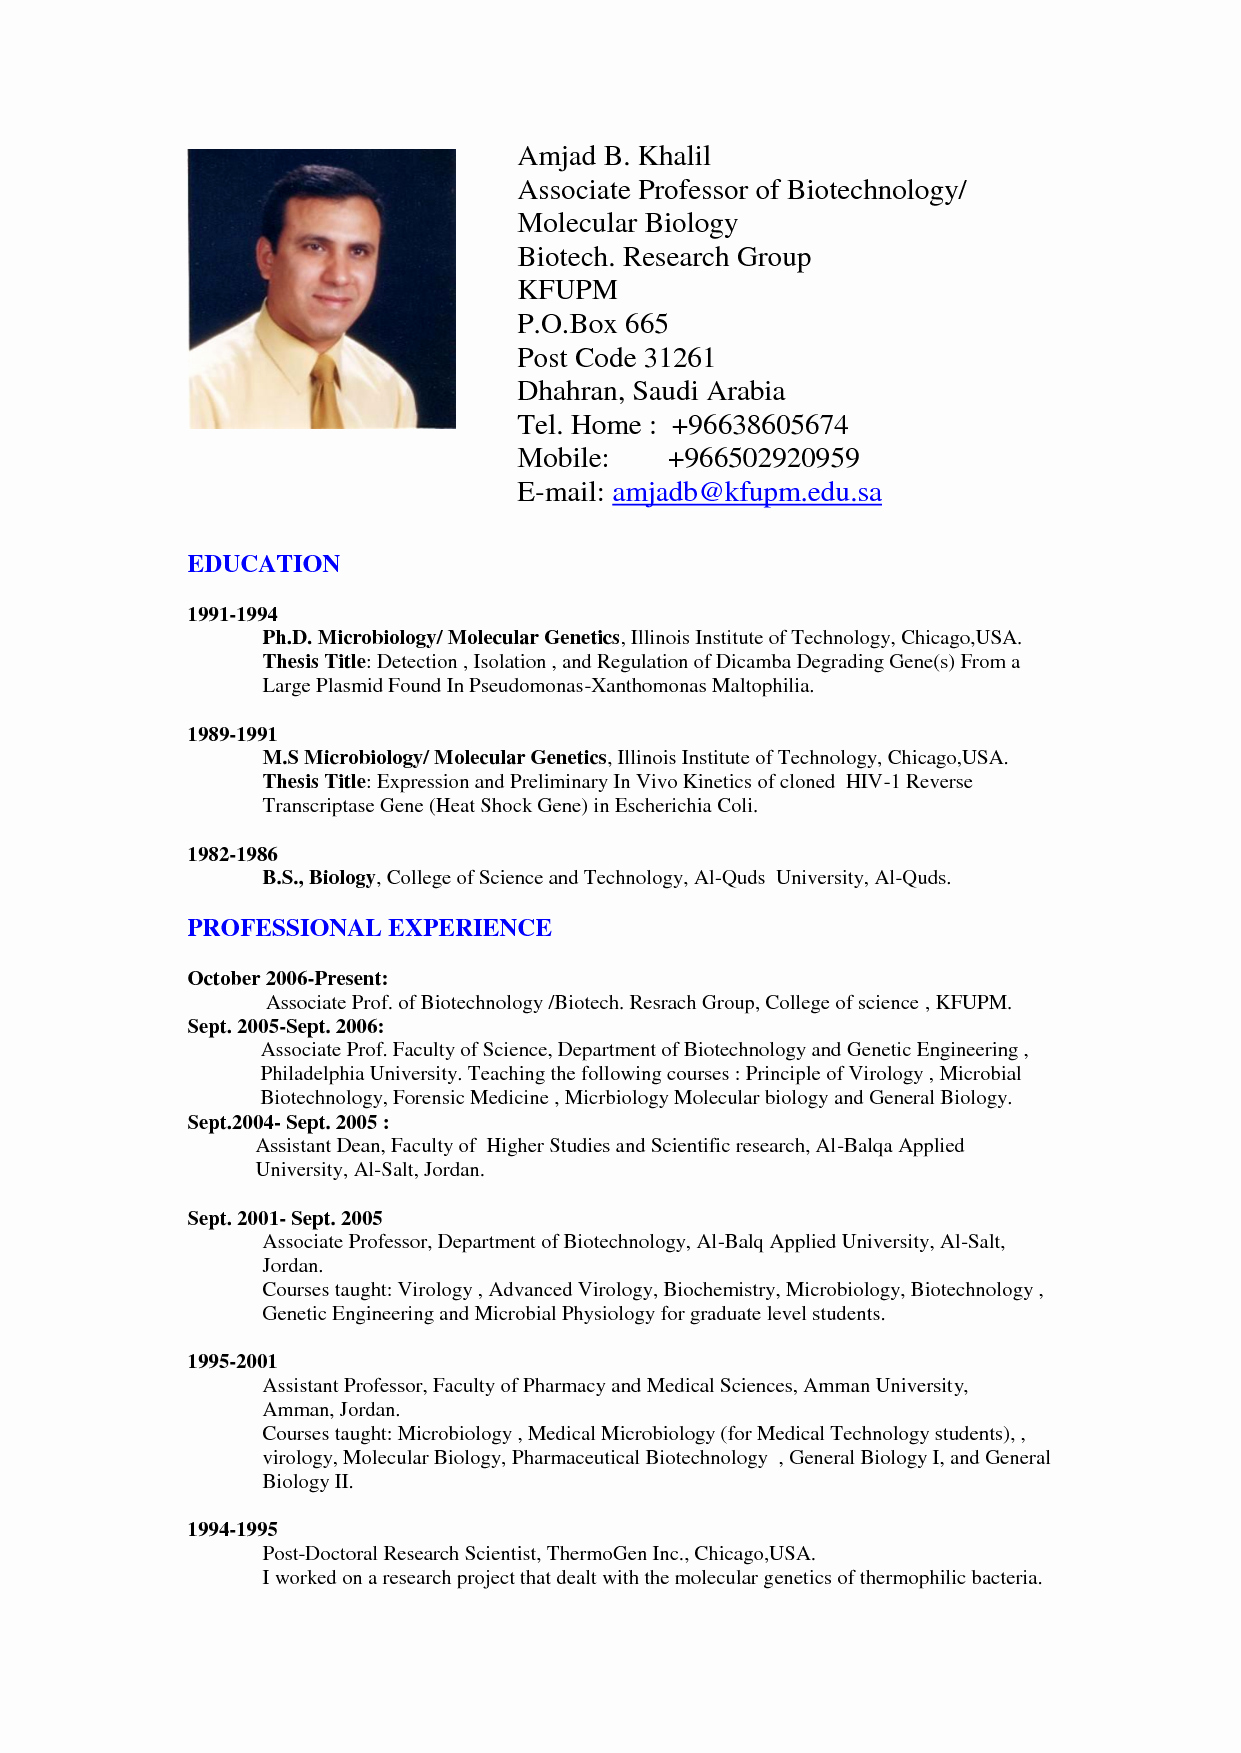 Professional Resume formats Free Download New Professional Resume format Doc